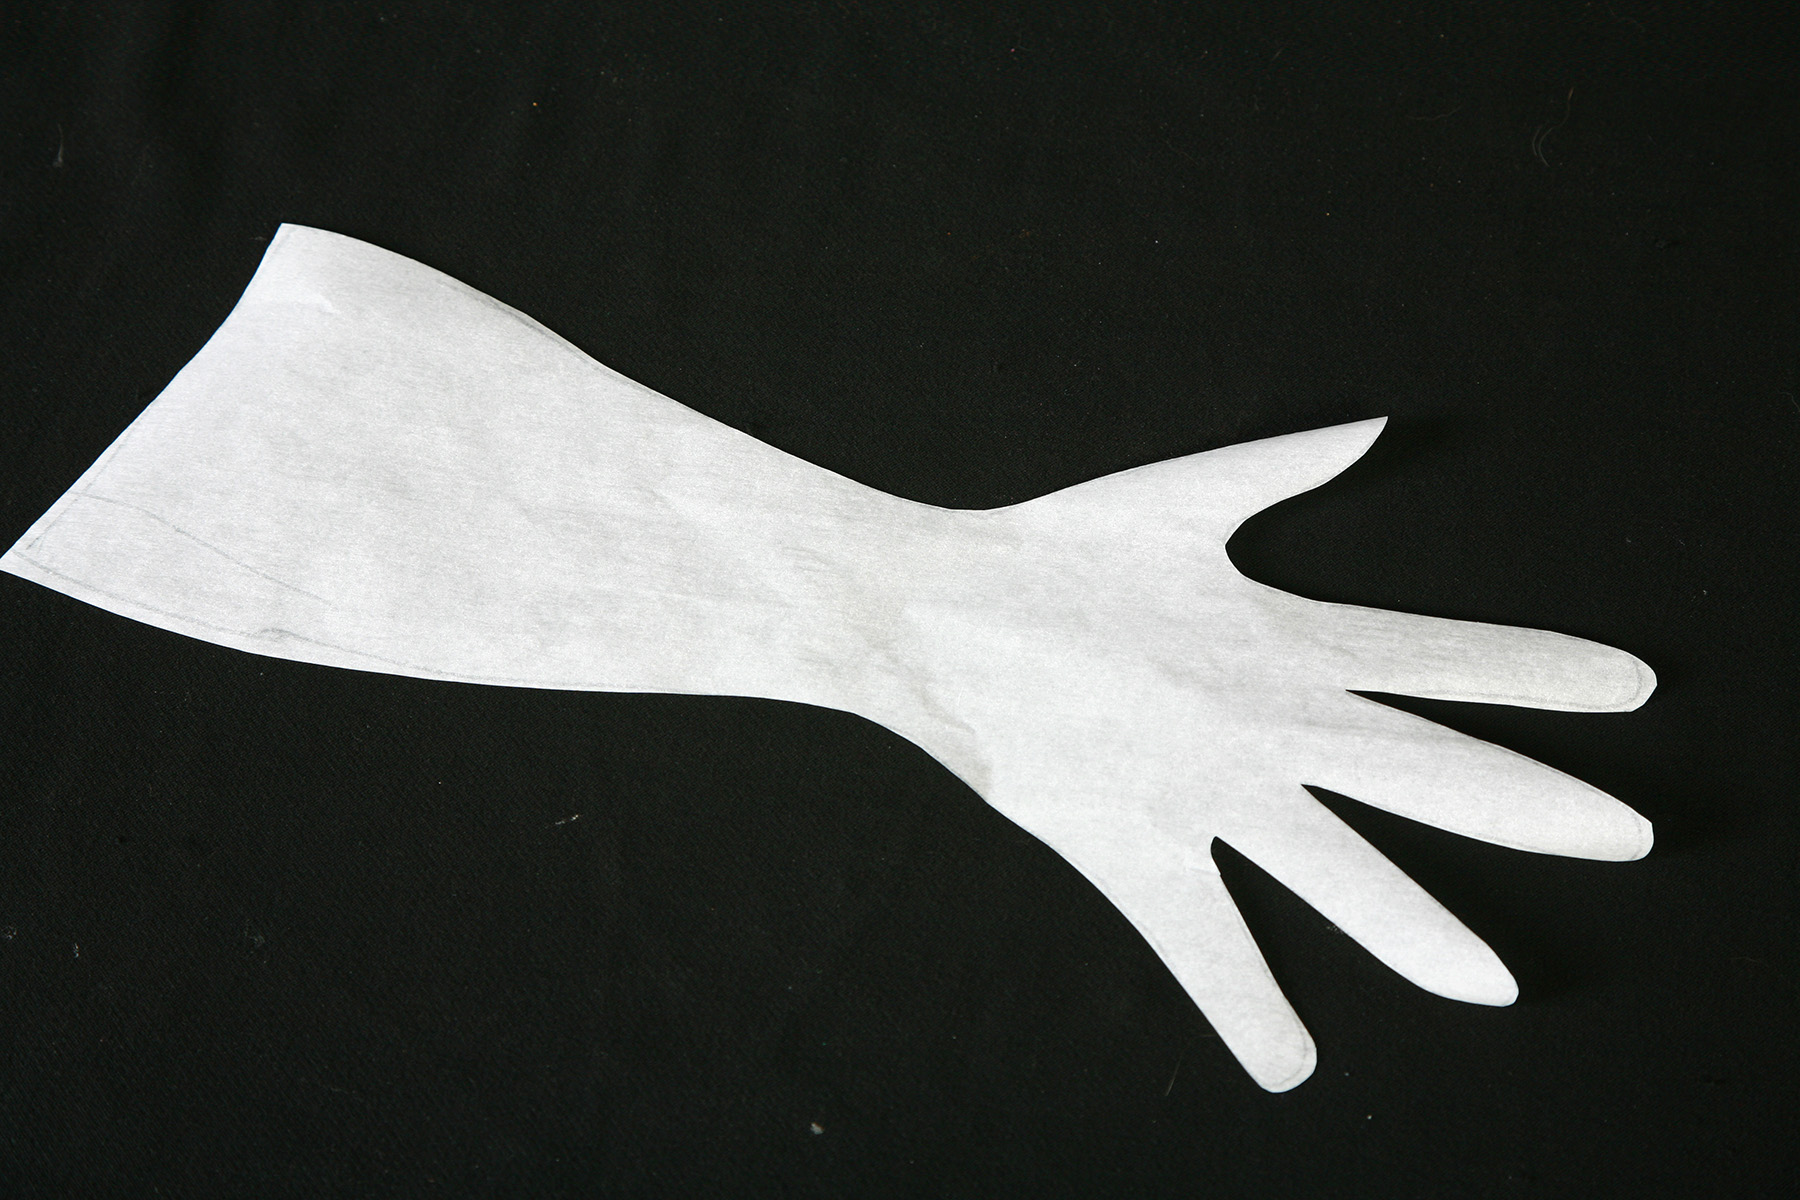 A spandex glove pattern that has been cut out of translucent paper, on a black background.